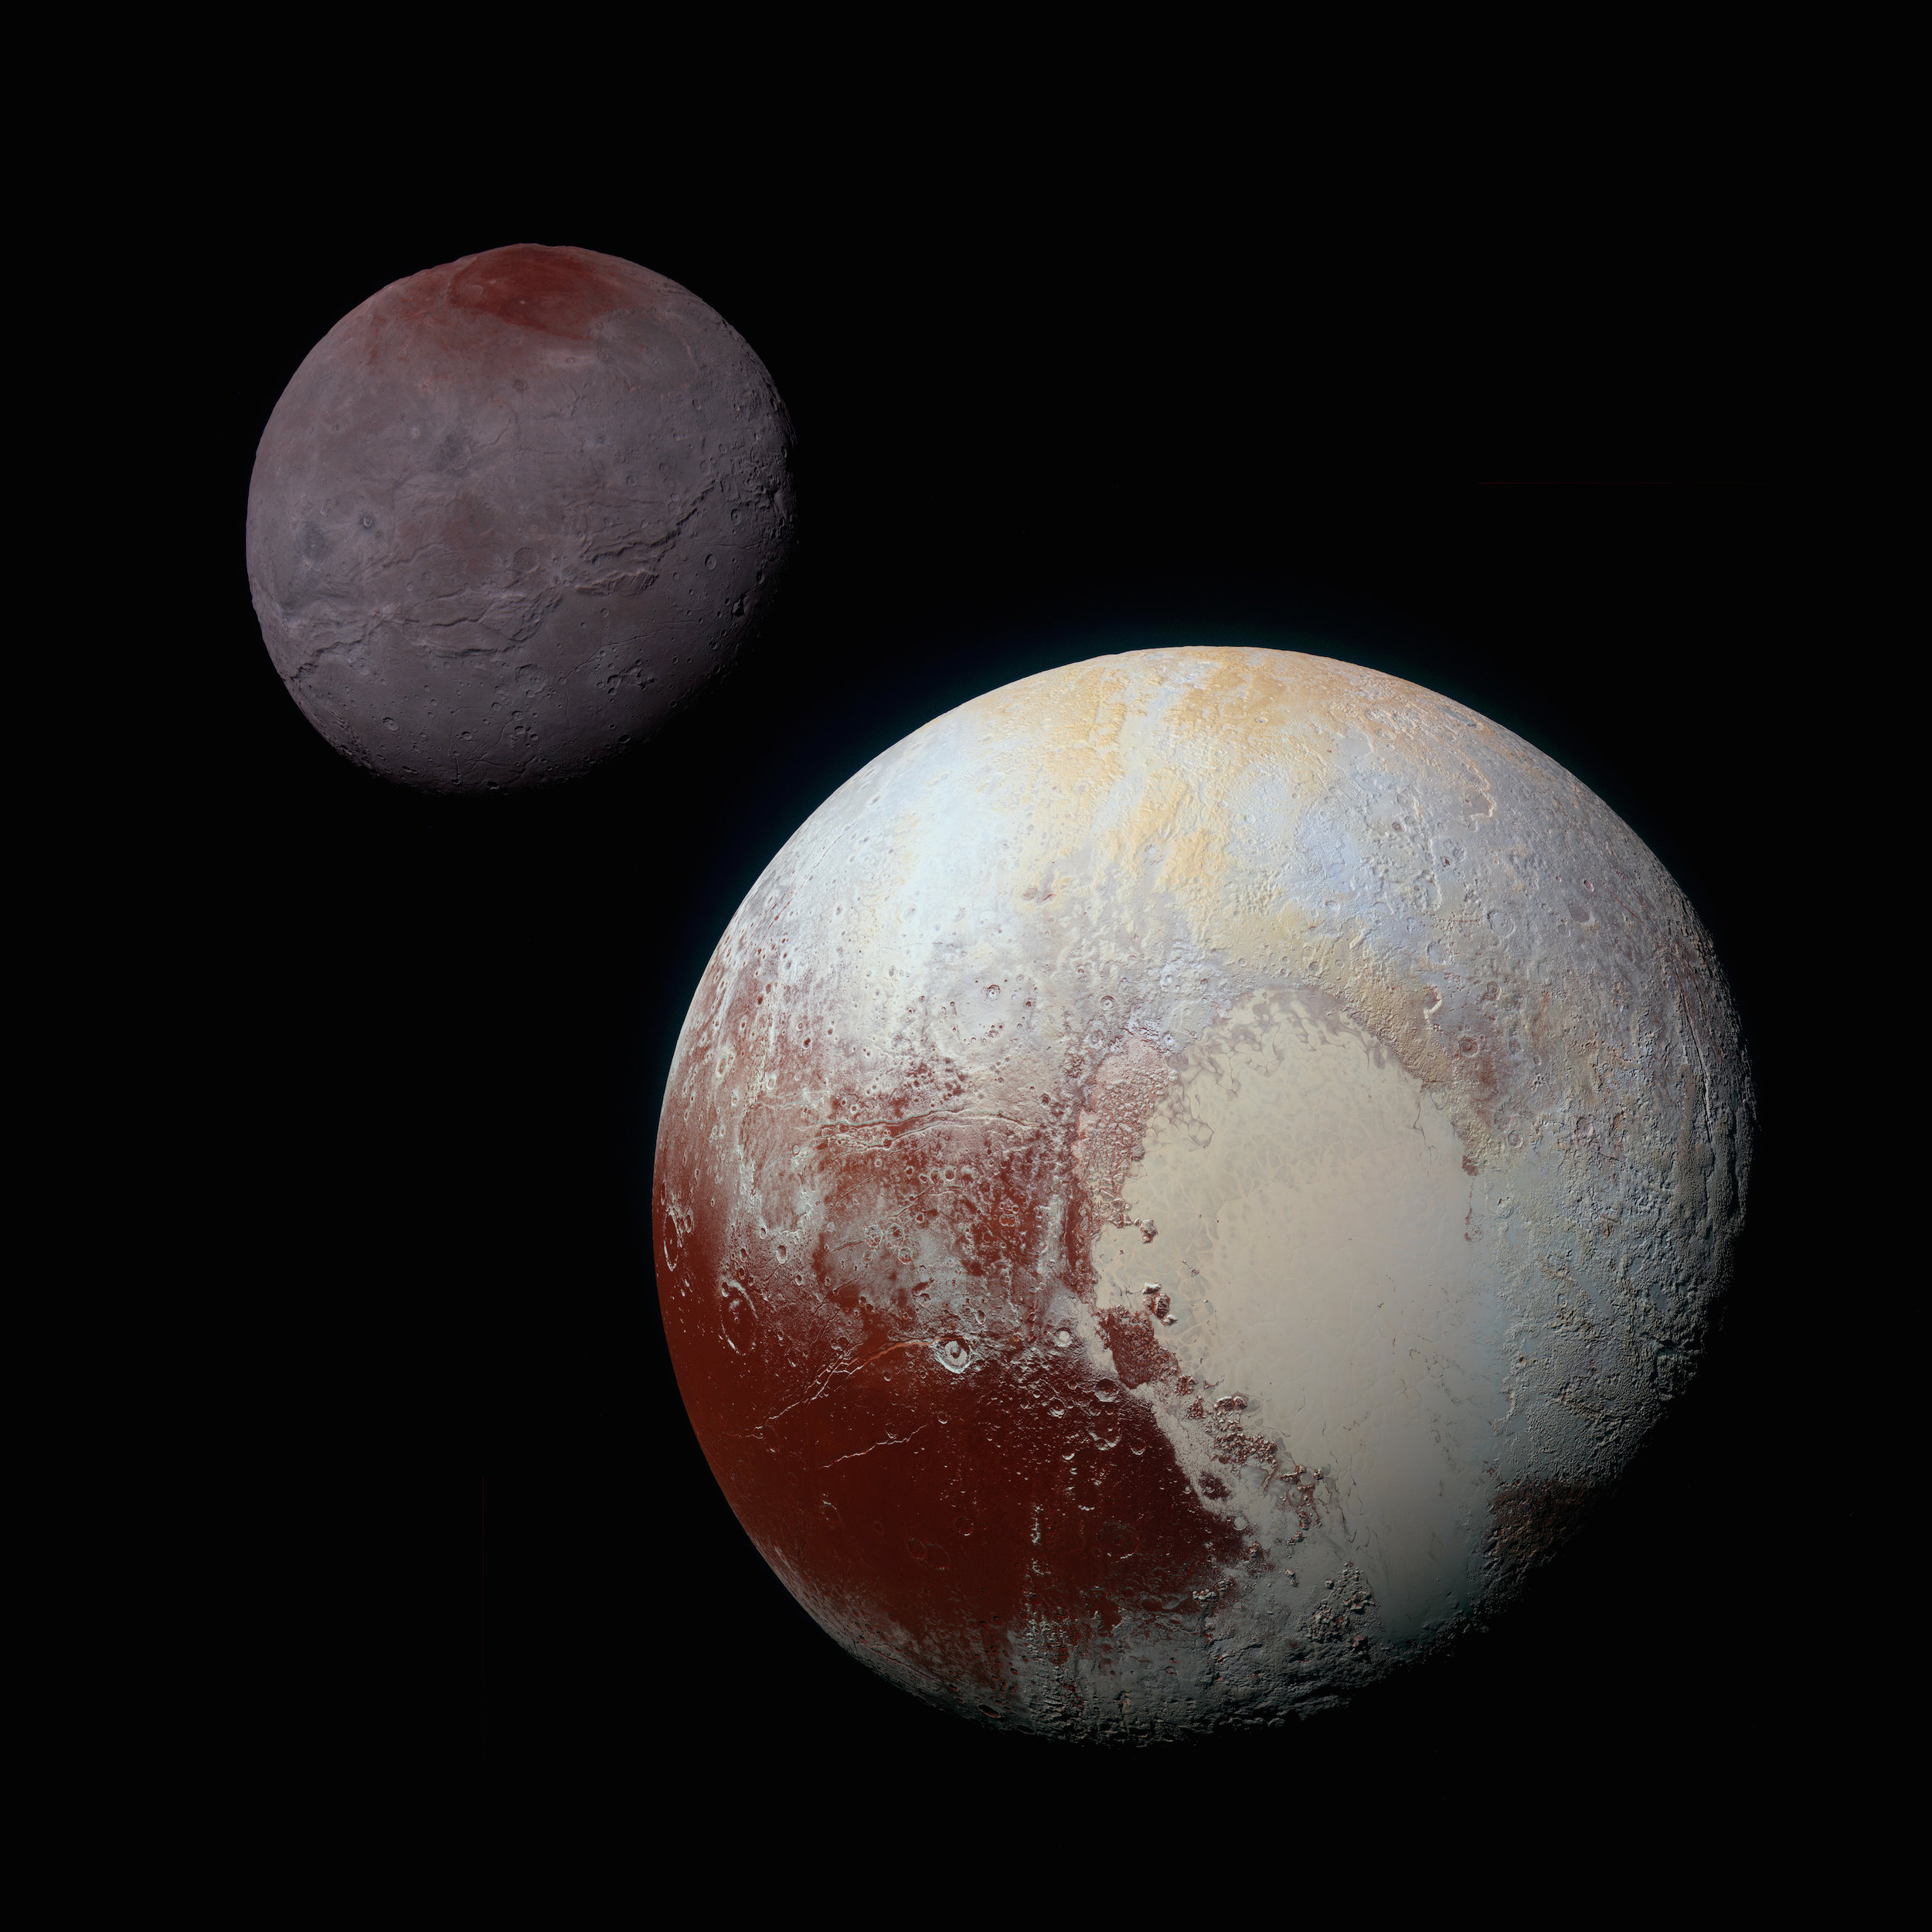 This composite of enhanced color images of Pluto (lower right) and Charon (upper left), was taken by NASA's New Horizons spacecraft as it passed through the Pluto system on July 14, 2015. This image highlights the striking differences between Pluto and Charon. The color and brightness of both Pluto and Charon have been processed identically to allow direct comparison of their surface properties, and to highlight the similarity between Charon's polar red terrain and Pluto's equatorial red terrain. Pluto and Charon are shown with approximately correct relative sizes, but their true separation is not to scale. The image combines blue, red and infrared images taken by the spacecraft's Ralph/Multispectral Visual Imaging Camera (MVIC).  Credit: NASA/JHUAPL/SwRI